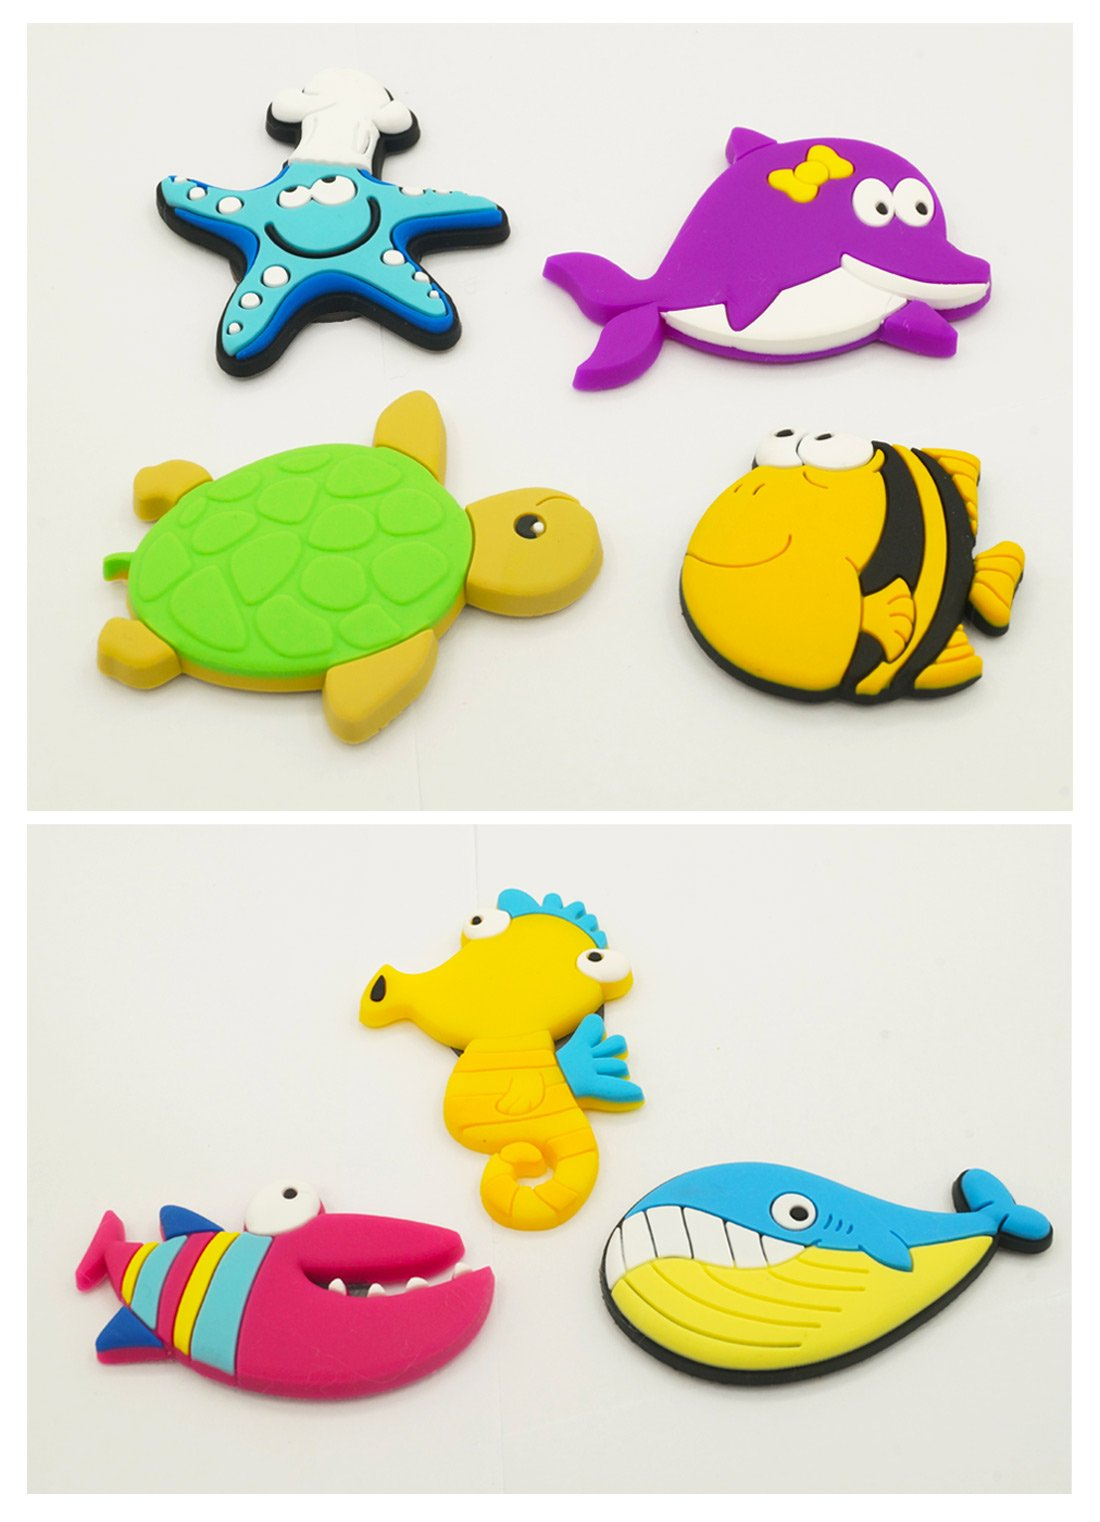 Fridge Magnets for Toddlers Under Sea Ocean Animal Magnets Cartoon Magnetic Fridge Funky Toy for Kids by Happy Cherry (Image #2)